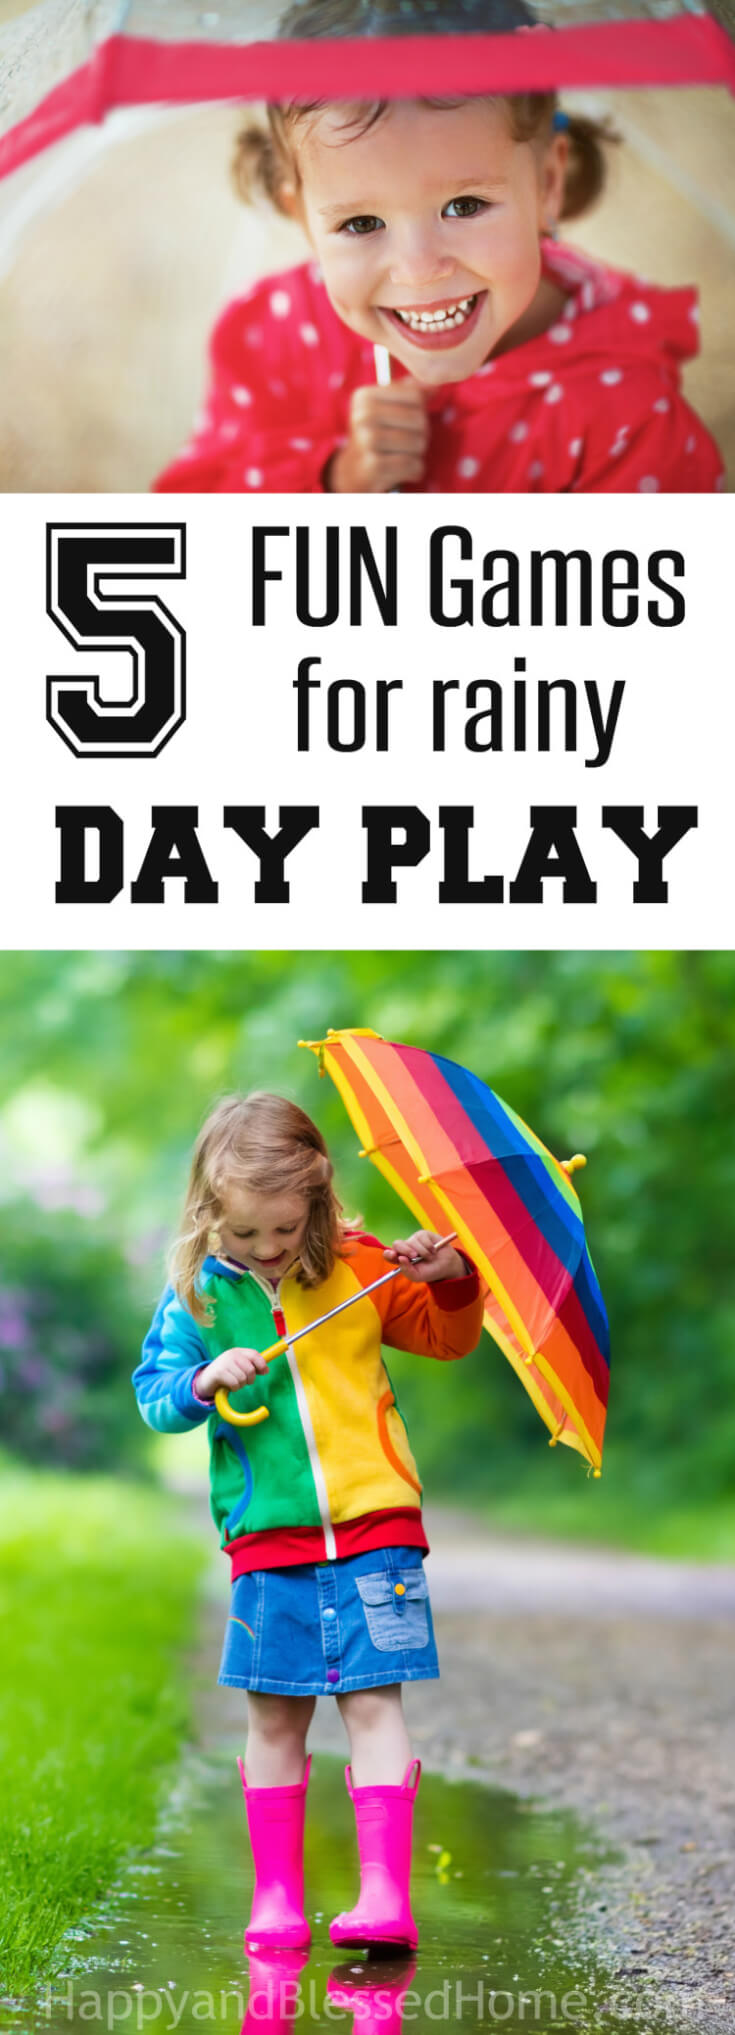 5-fun-games-for-rainy-day-play-is-perfect-for-the-days-when-youre-stuck-indoors